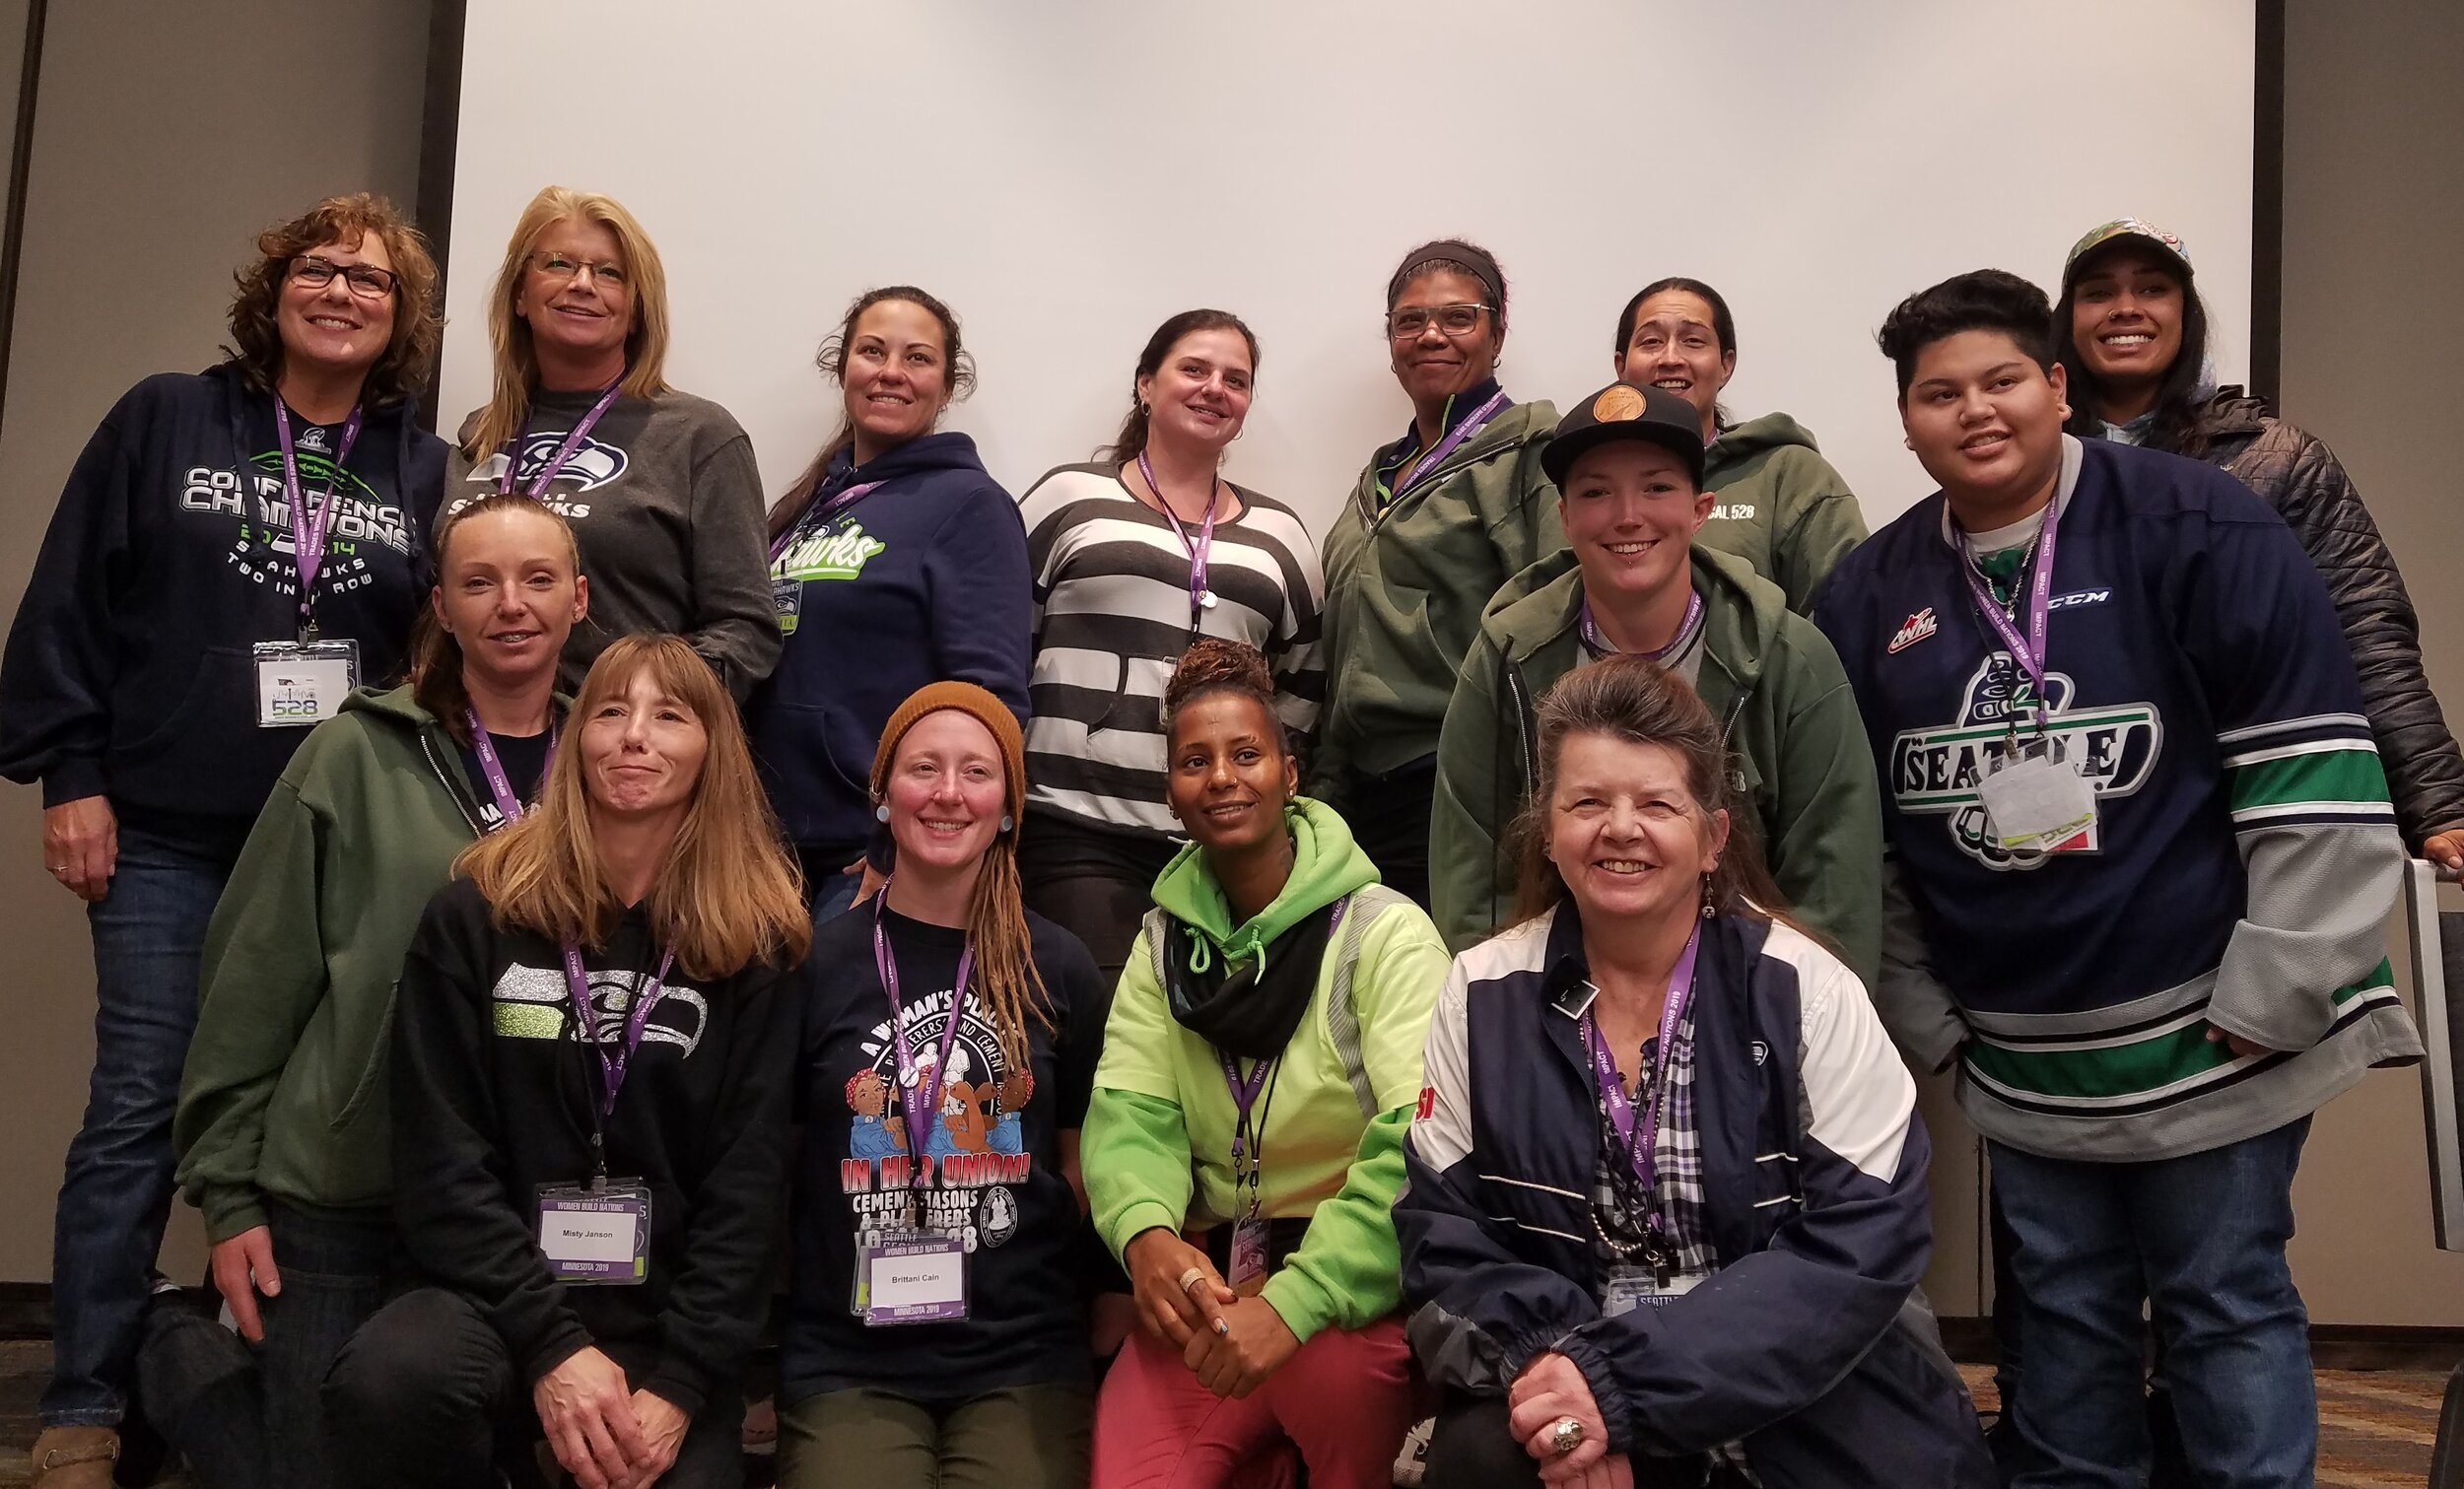 Tradeswomen Build Nations - 2019 - 2700 Women attended the Tradeswomen Build Nations Conference in Minneapolis this year, an event that is increasing in numbers every year. 25 women from the OPCMIA attended with 15 of them attending from Seattle. Other locations included, California, Portland, Boston, Chicago, Peoria, Milwaukee and, of course, Minneapolis.Over the course of the 3-day event, there were 3 workshop sessions to attend. The main conference had the perfect number of speakers, including Sean McGarvey, President of NABTU and Vicki O'Leary, Chair of the NABTU Tradeswomen Committee.This trip was launched with Sisterhood and shared experience in mind. It is always overwhelming and exciting to see so many tradeswomen, some familiar, but mostly new attending an event like this. We discussed recruiting and retention for women as well as, some of the challenges that still lay ahead.I'd like to thank the membership for allowing me the opportunity to represent our Local Union and the OPCMIA at this important conference.Marilyn KennedyJourneyman Cement MasonLocal 528